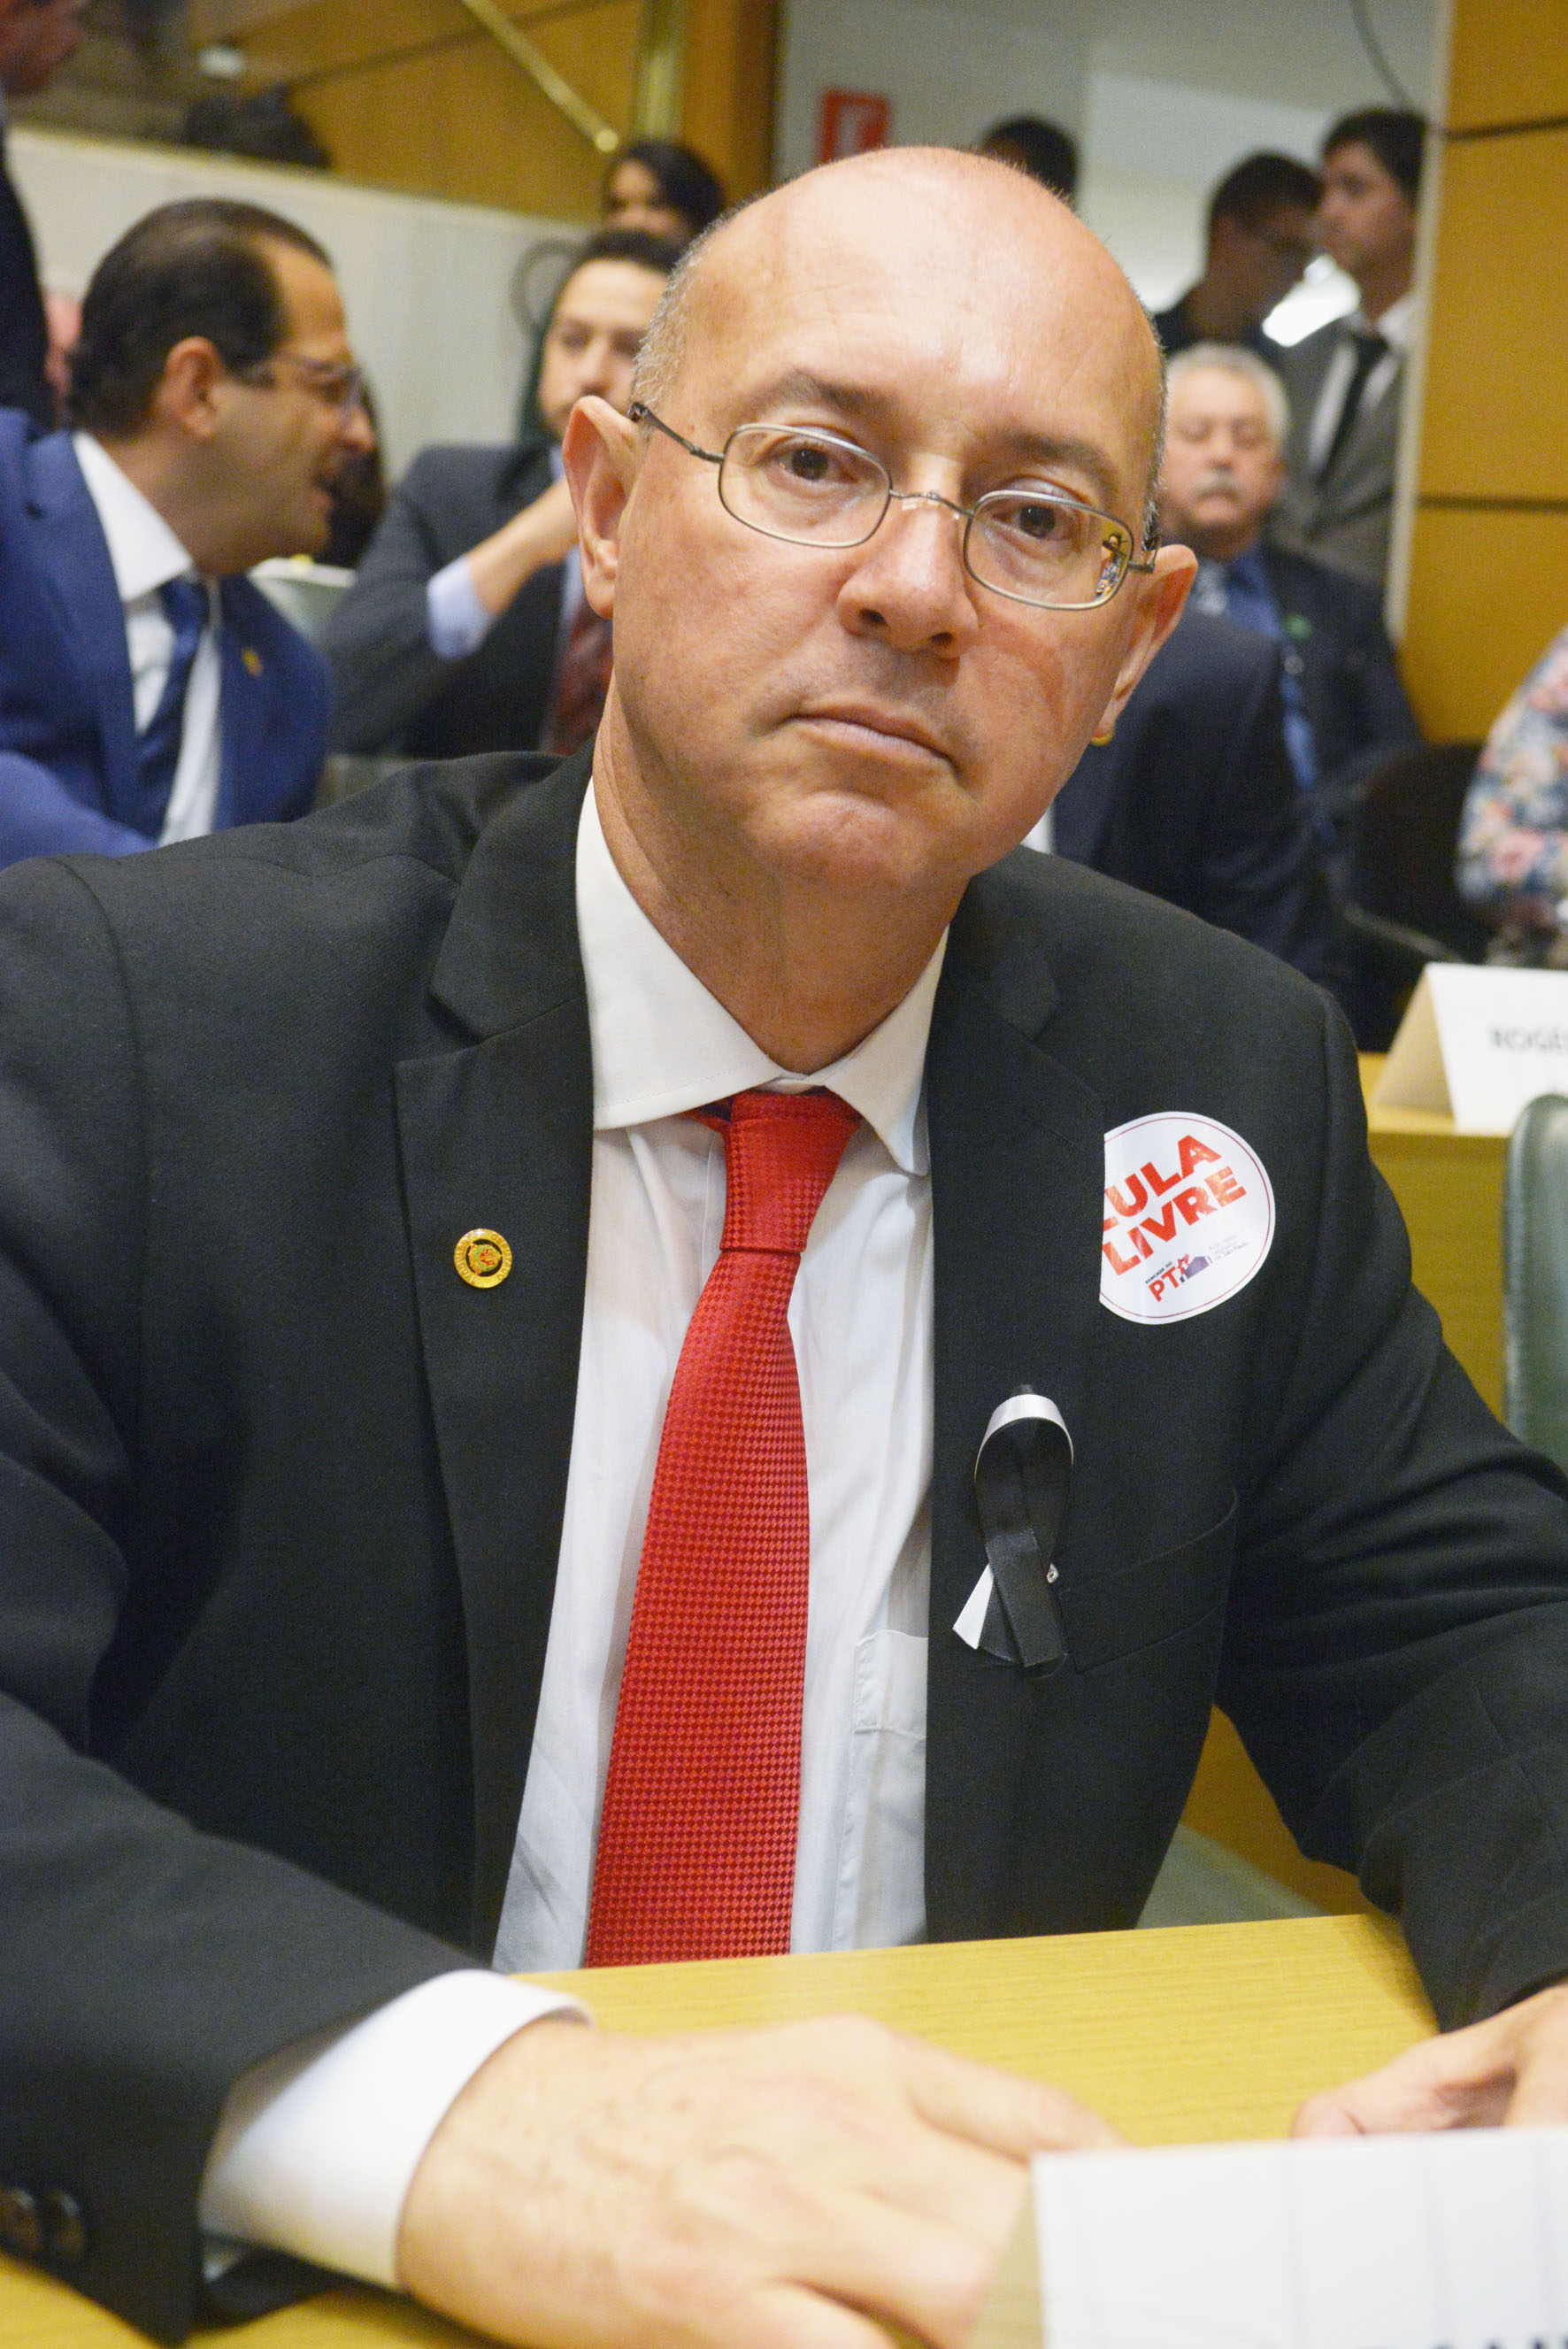 Paulo Fiorilo (PT)<a style='float:right' href='https://www3.al.sp.gov.br/repositorio/noticia/N-03-2019/fg231395.jpg' target=_blank><img src='/_img/material-file-download-white.png' width='14px' alt='Clique para baixar a imagem'></a>